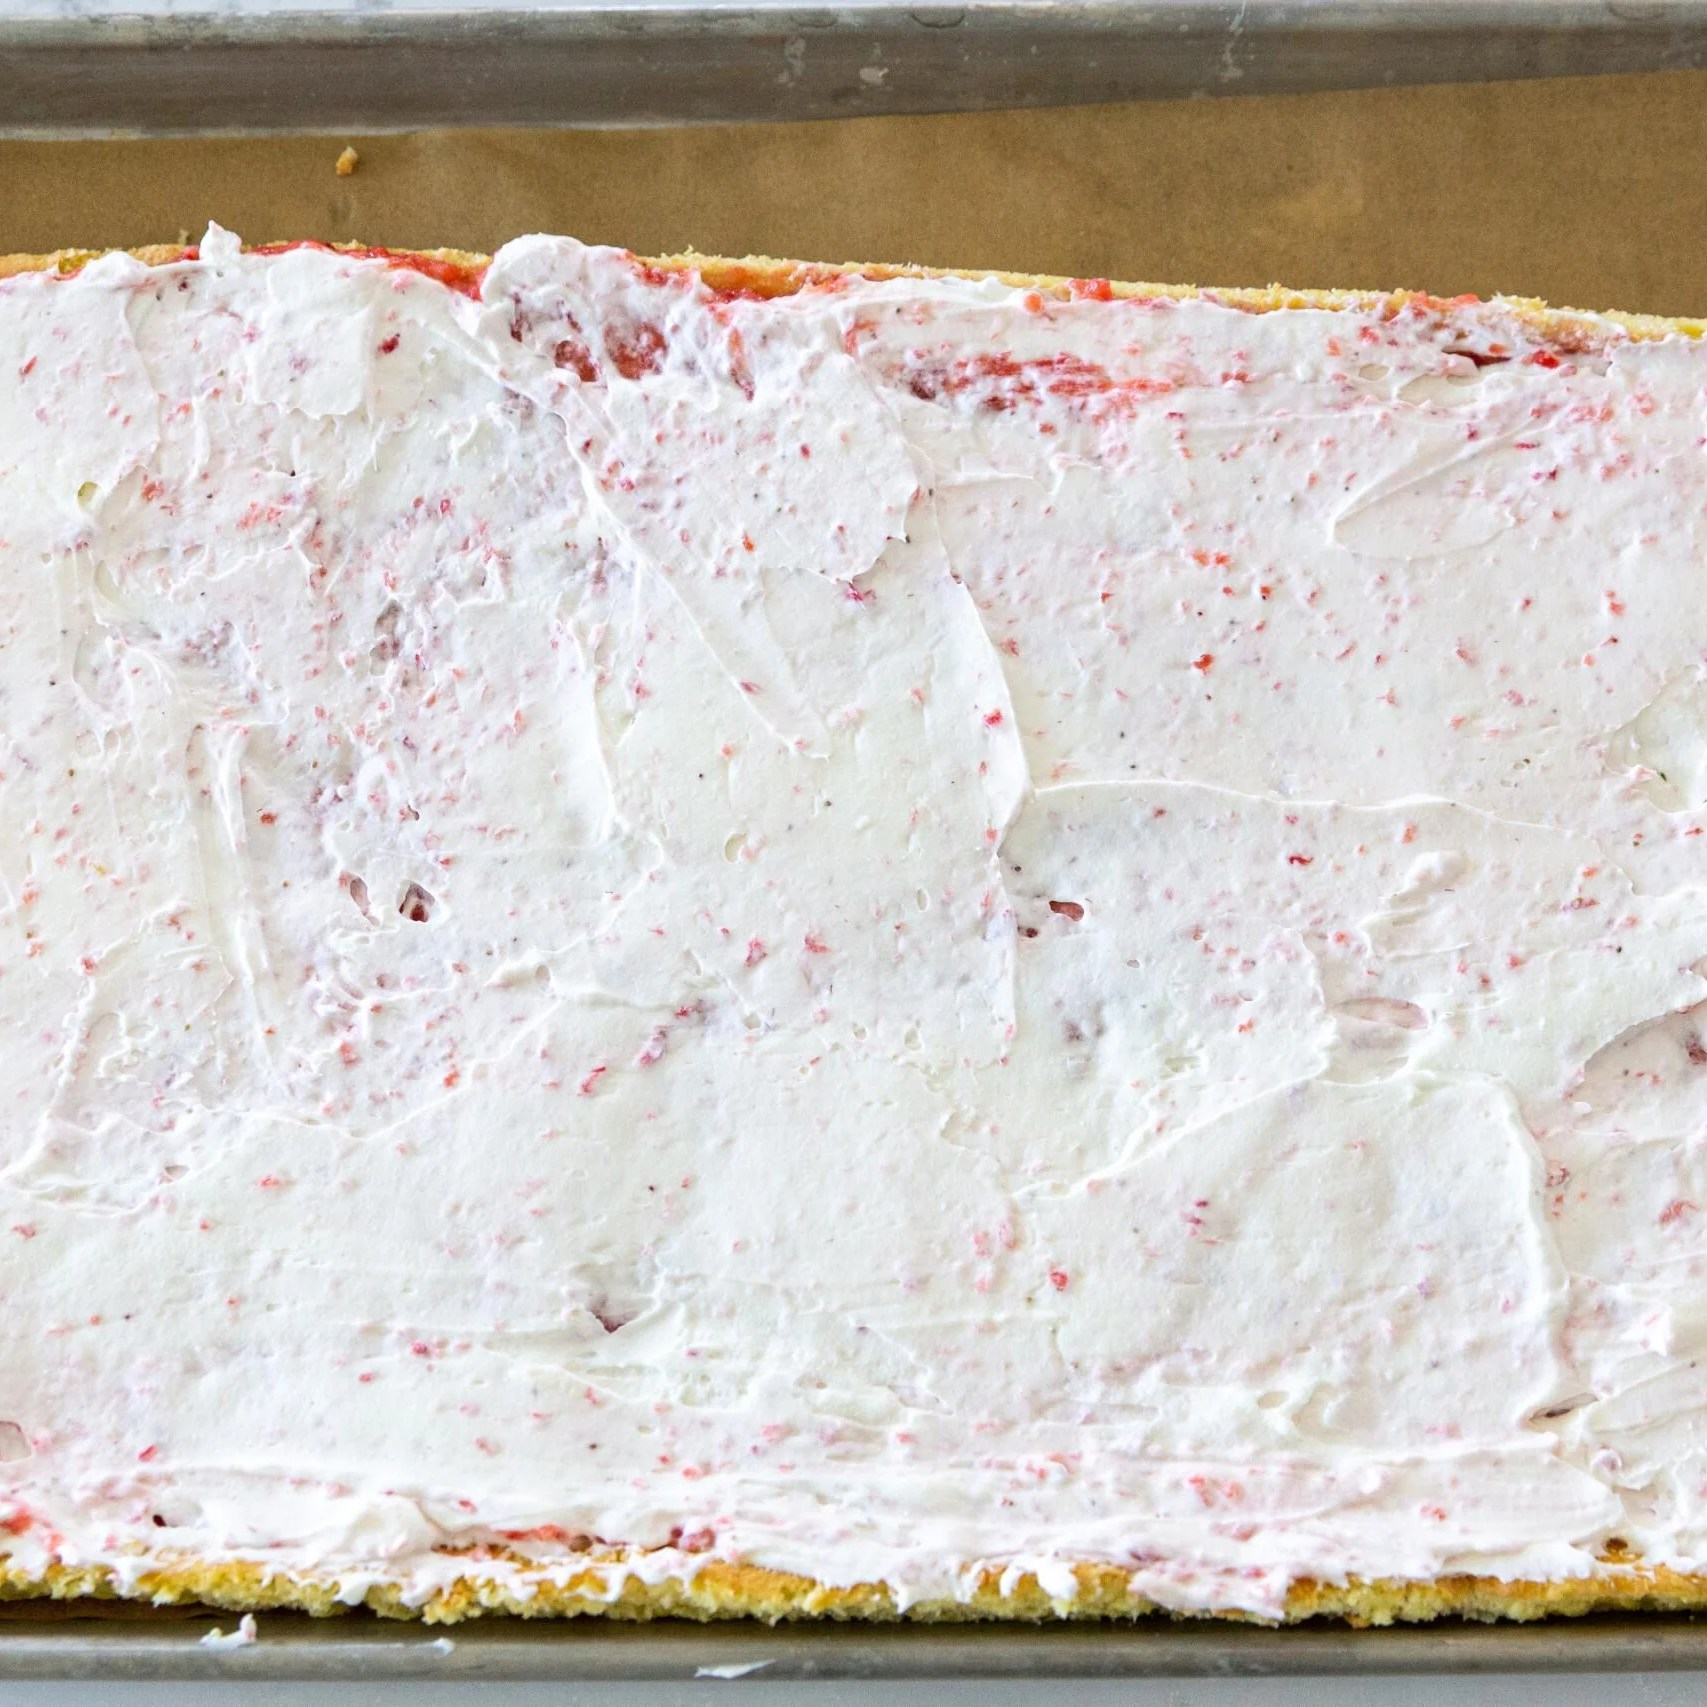 cake with blended strawberries and cream